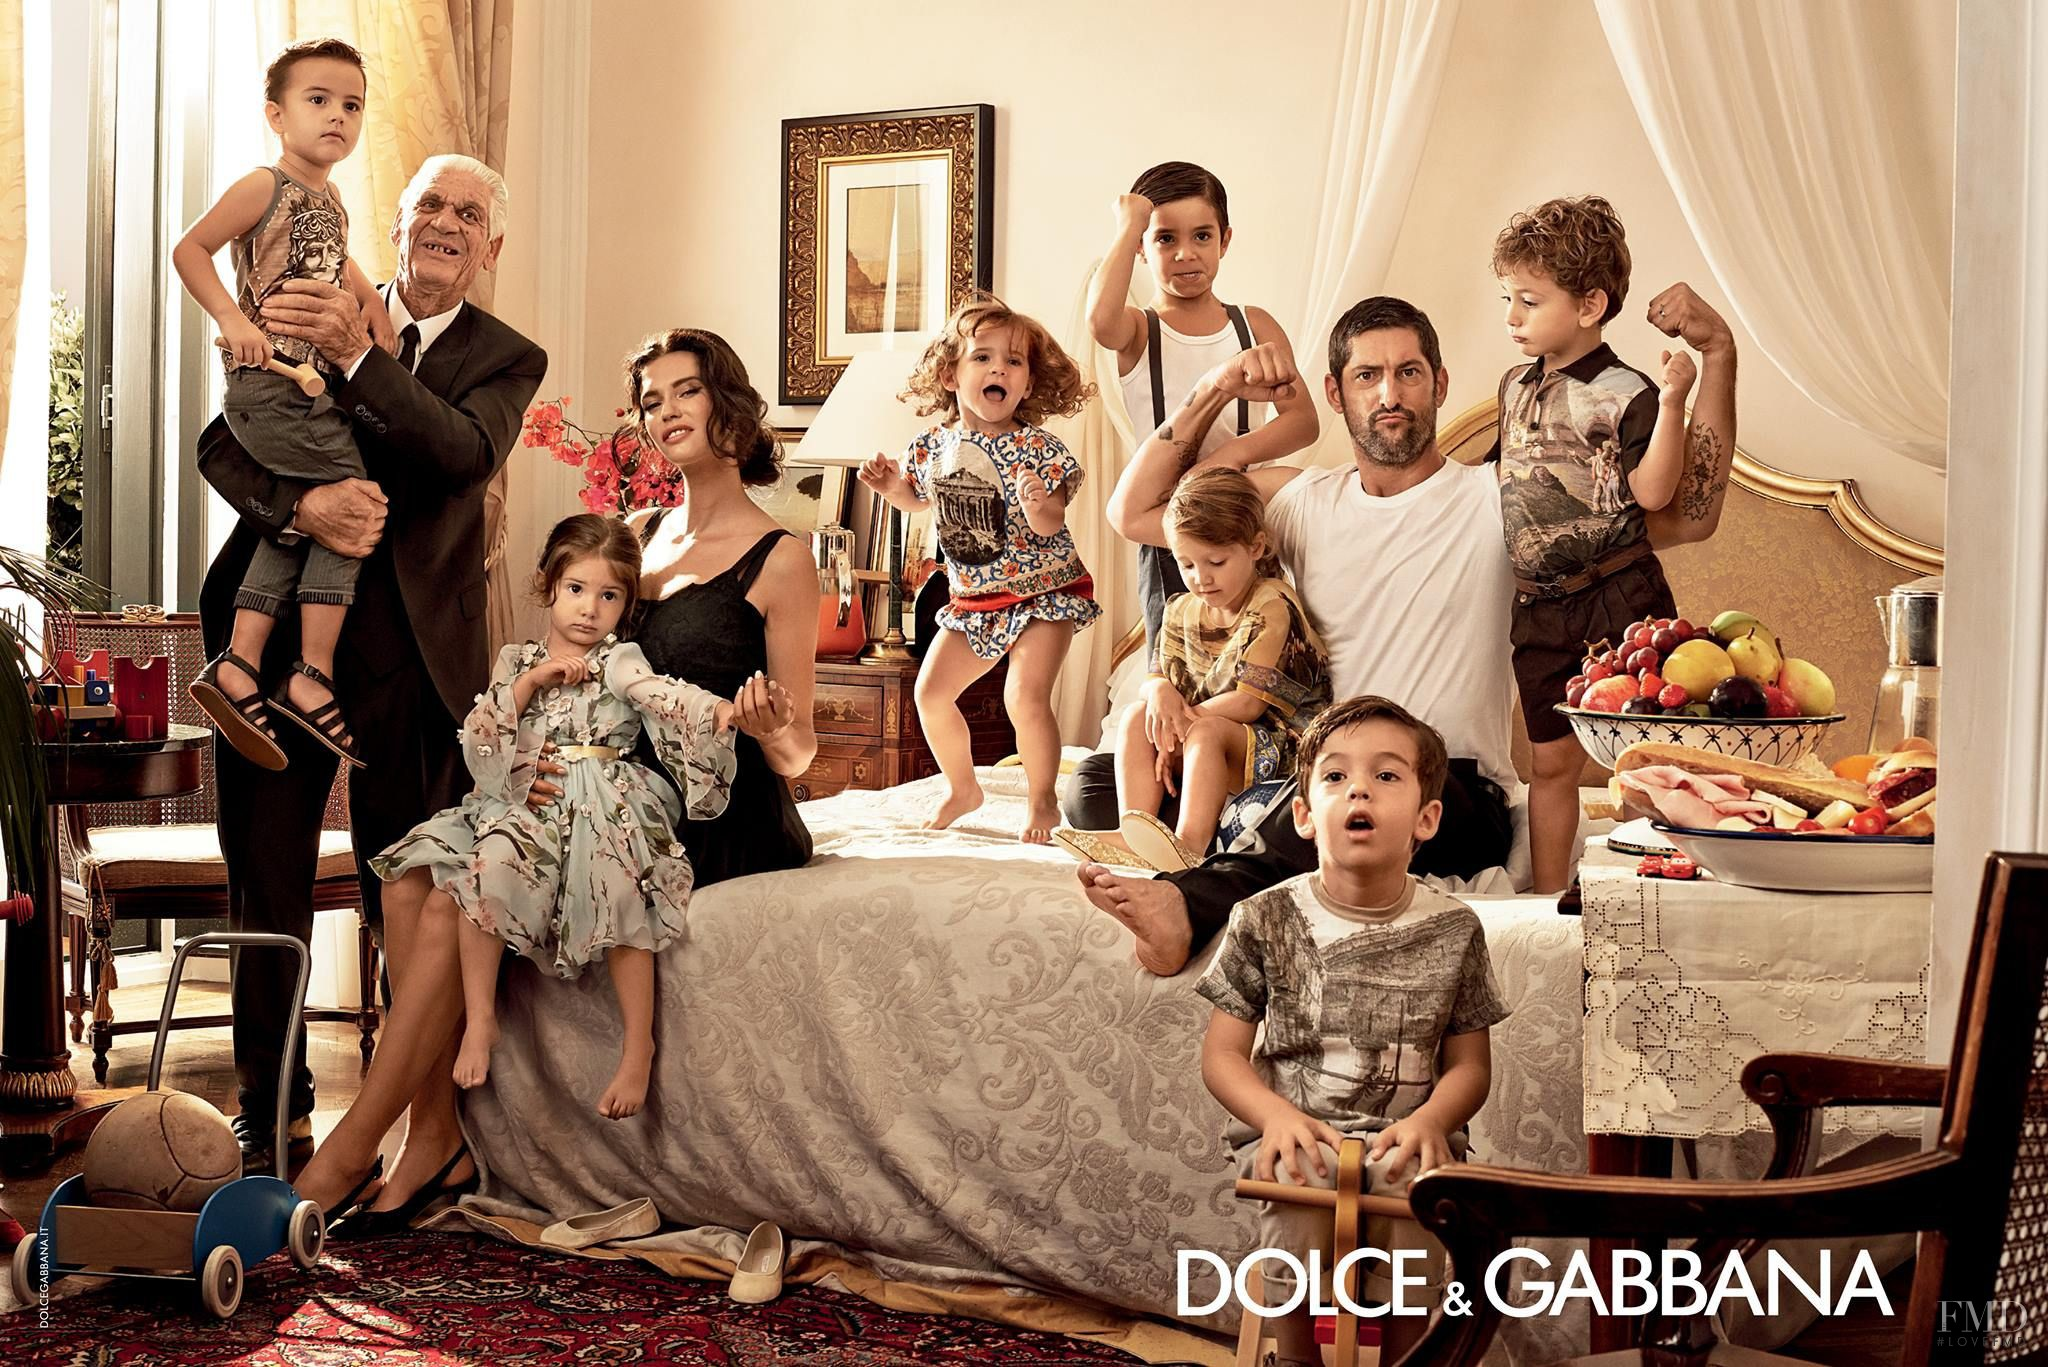 Dolce & Gabbana's spring/summer 2014 campaign, shot in Taormina, Sicily, relies on the tropes of the traditional family and small-town life. Photograph by Domenico Dolce.